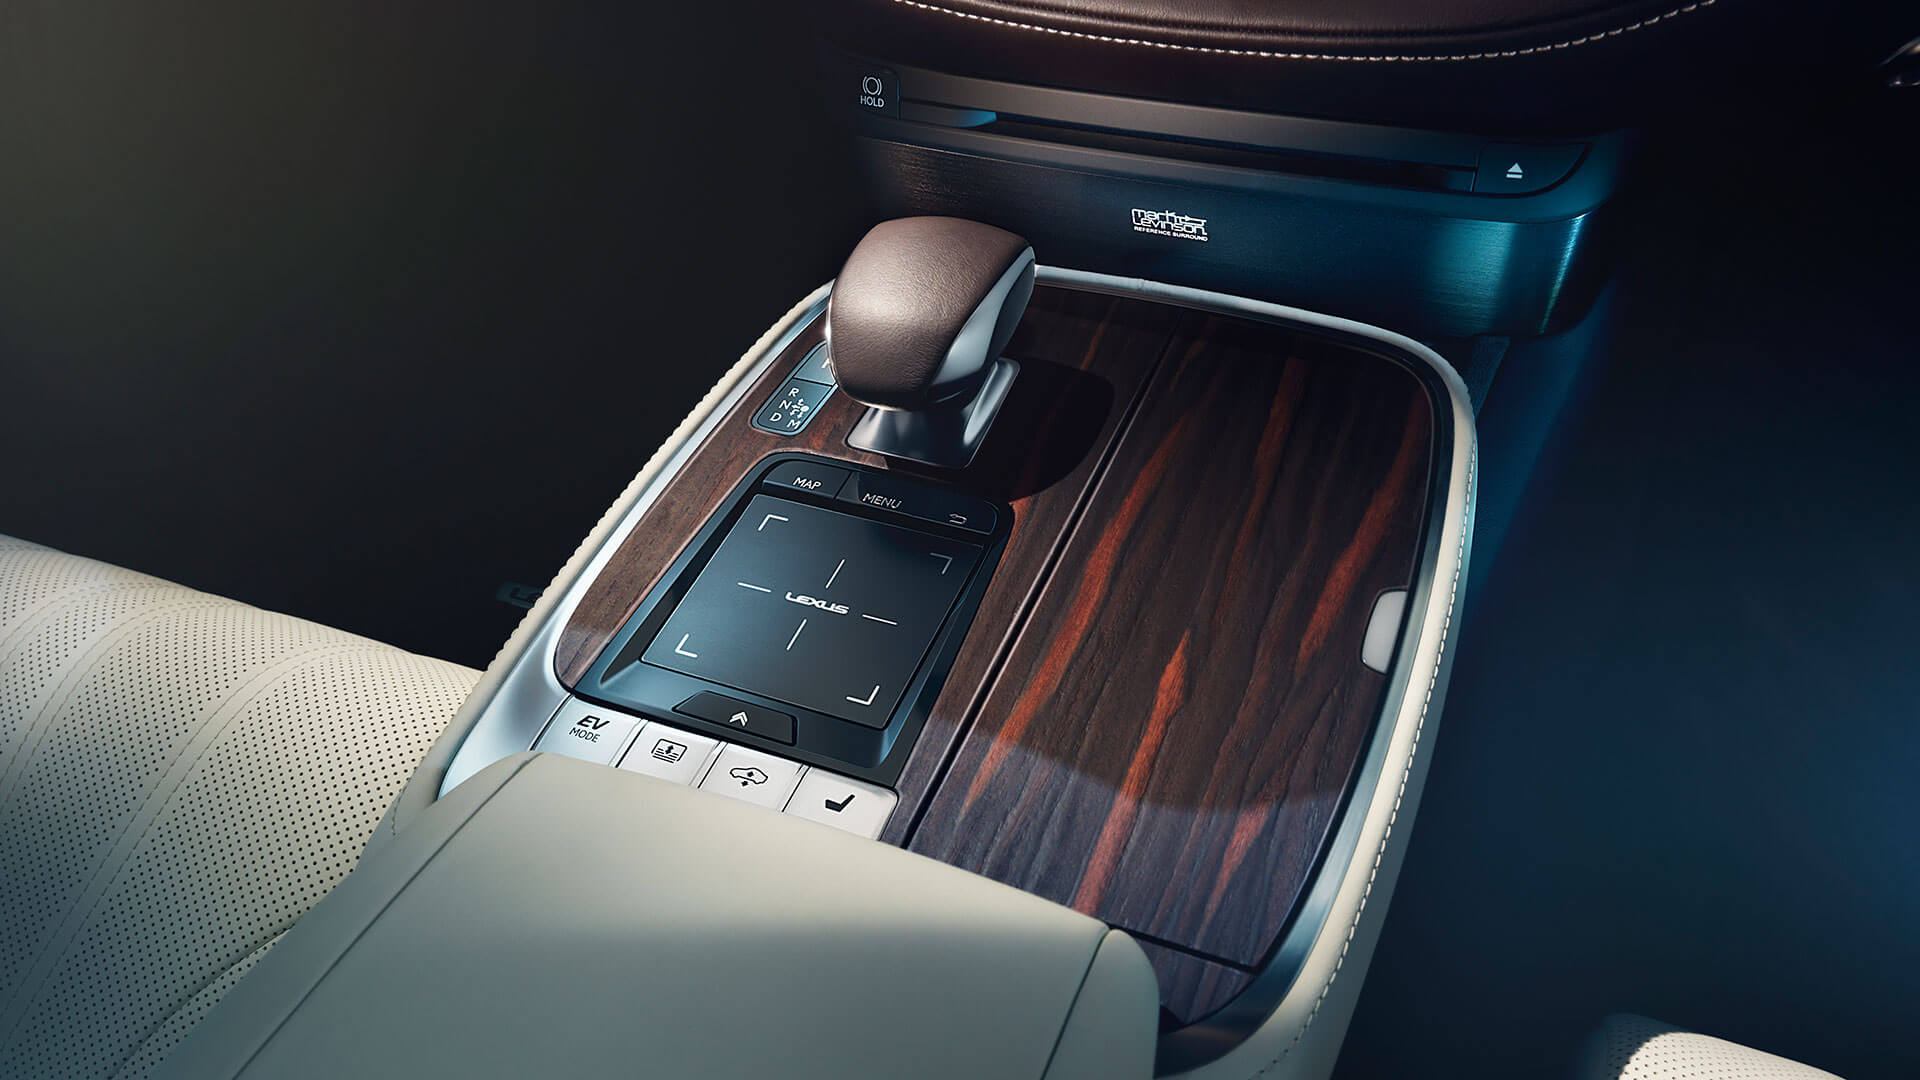 2018 lexus ls gallery 006 interior